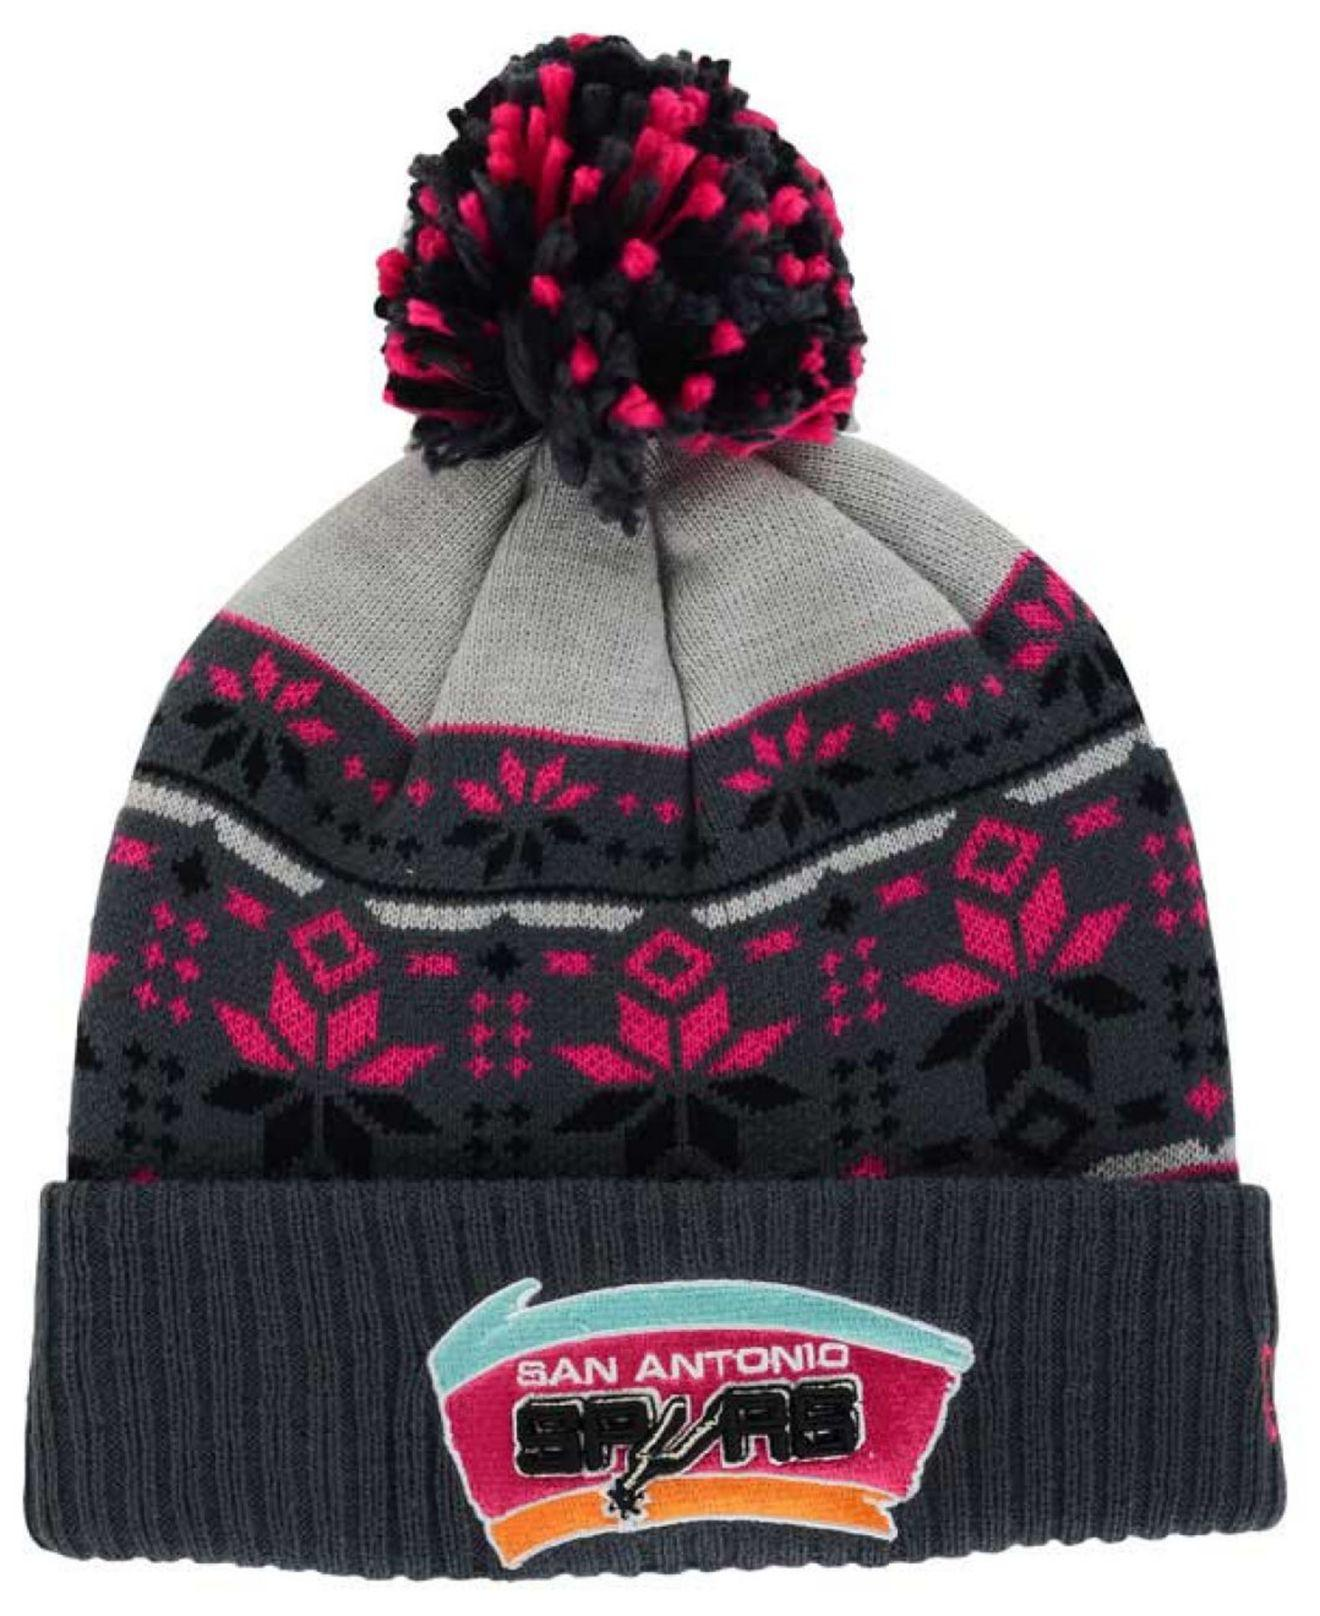 3dcde6f496f ... black geotech cuffed pom knit 9a0f5 abf89 canada detailed pictures  ddc46 14f92 lyst ktz san antonio spurs flake shake knit hat in pink ...